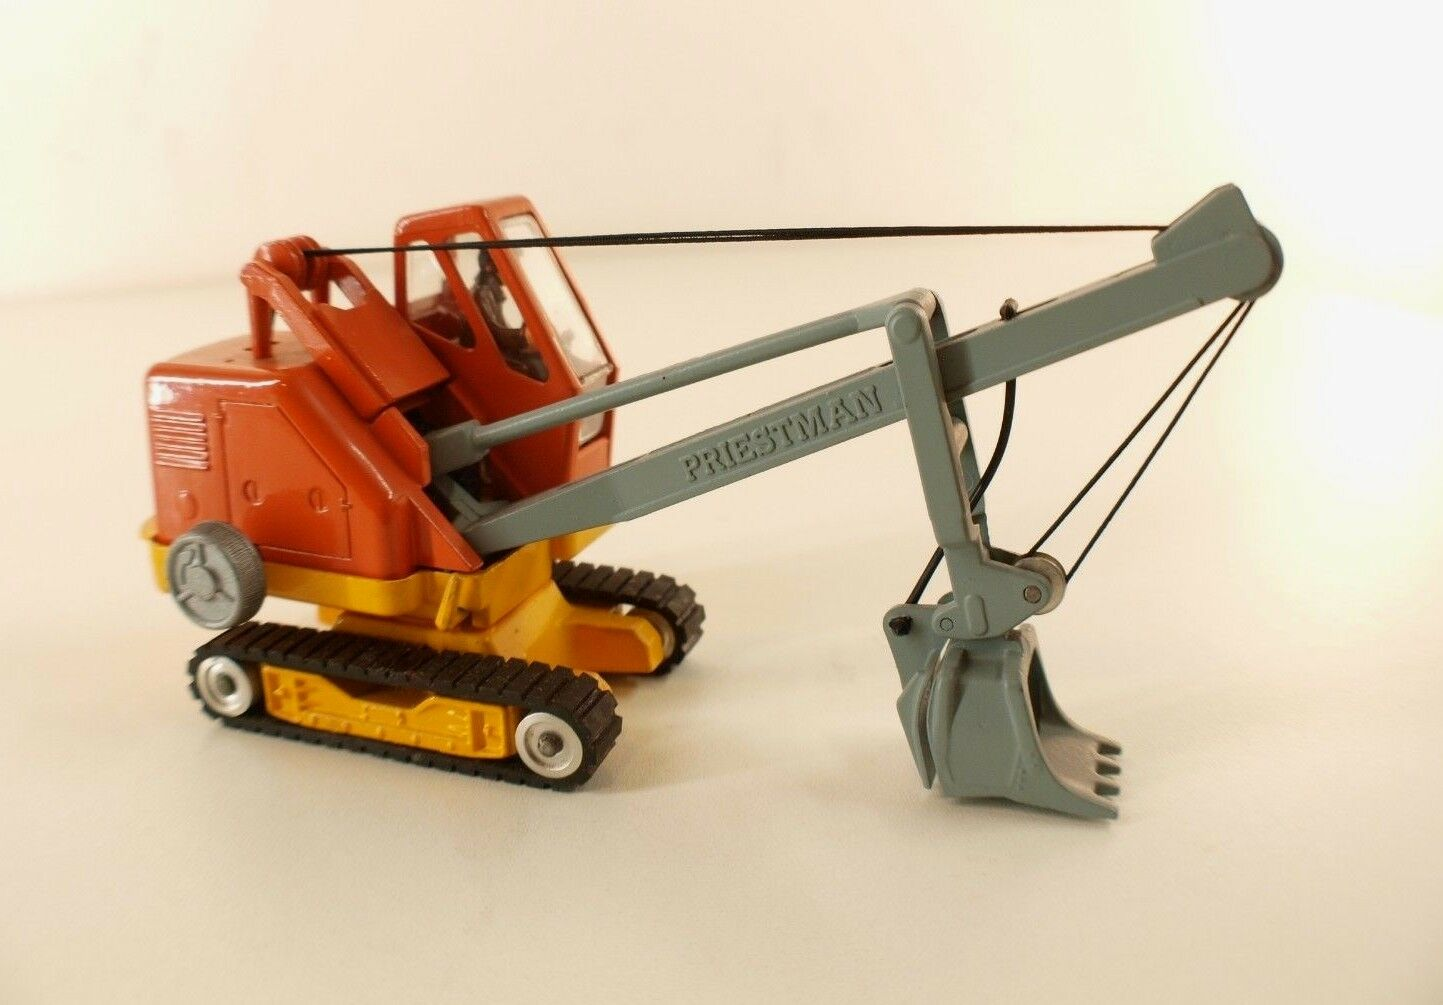 Corgi Major n° 1128 Pelleteuse PRIESThomme CUB Power  Shovel ancien jamais servi  offrant 100%